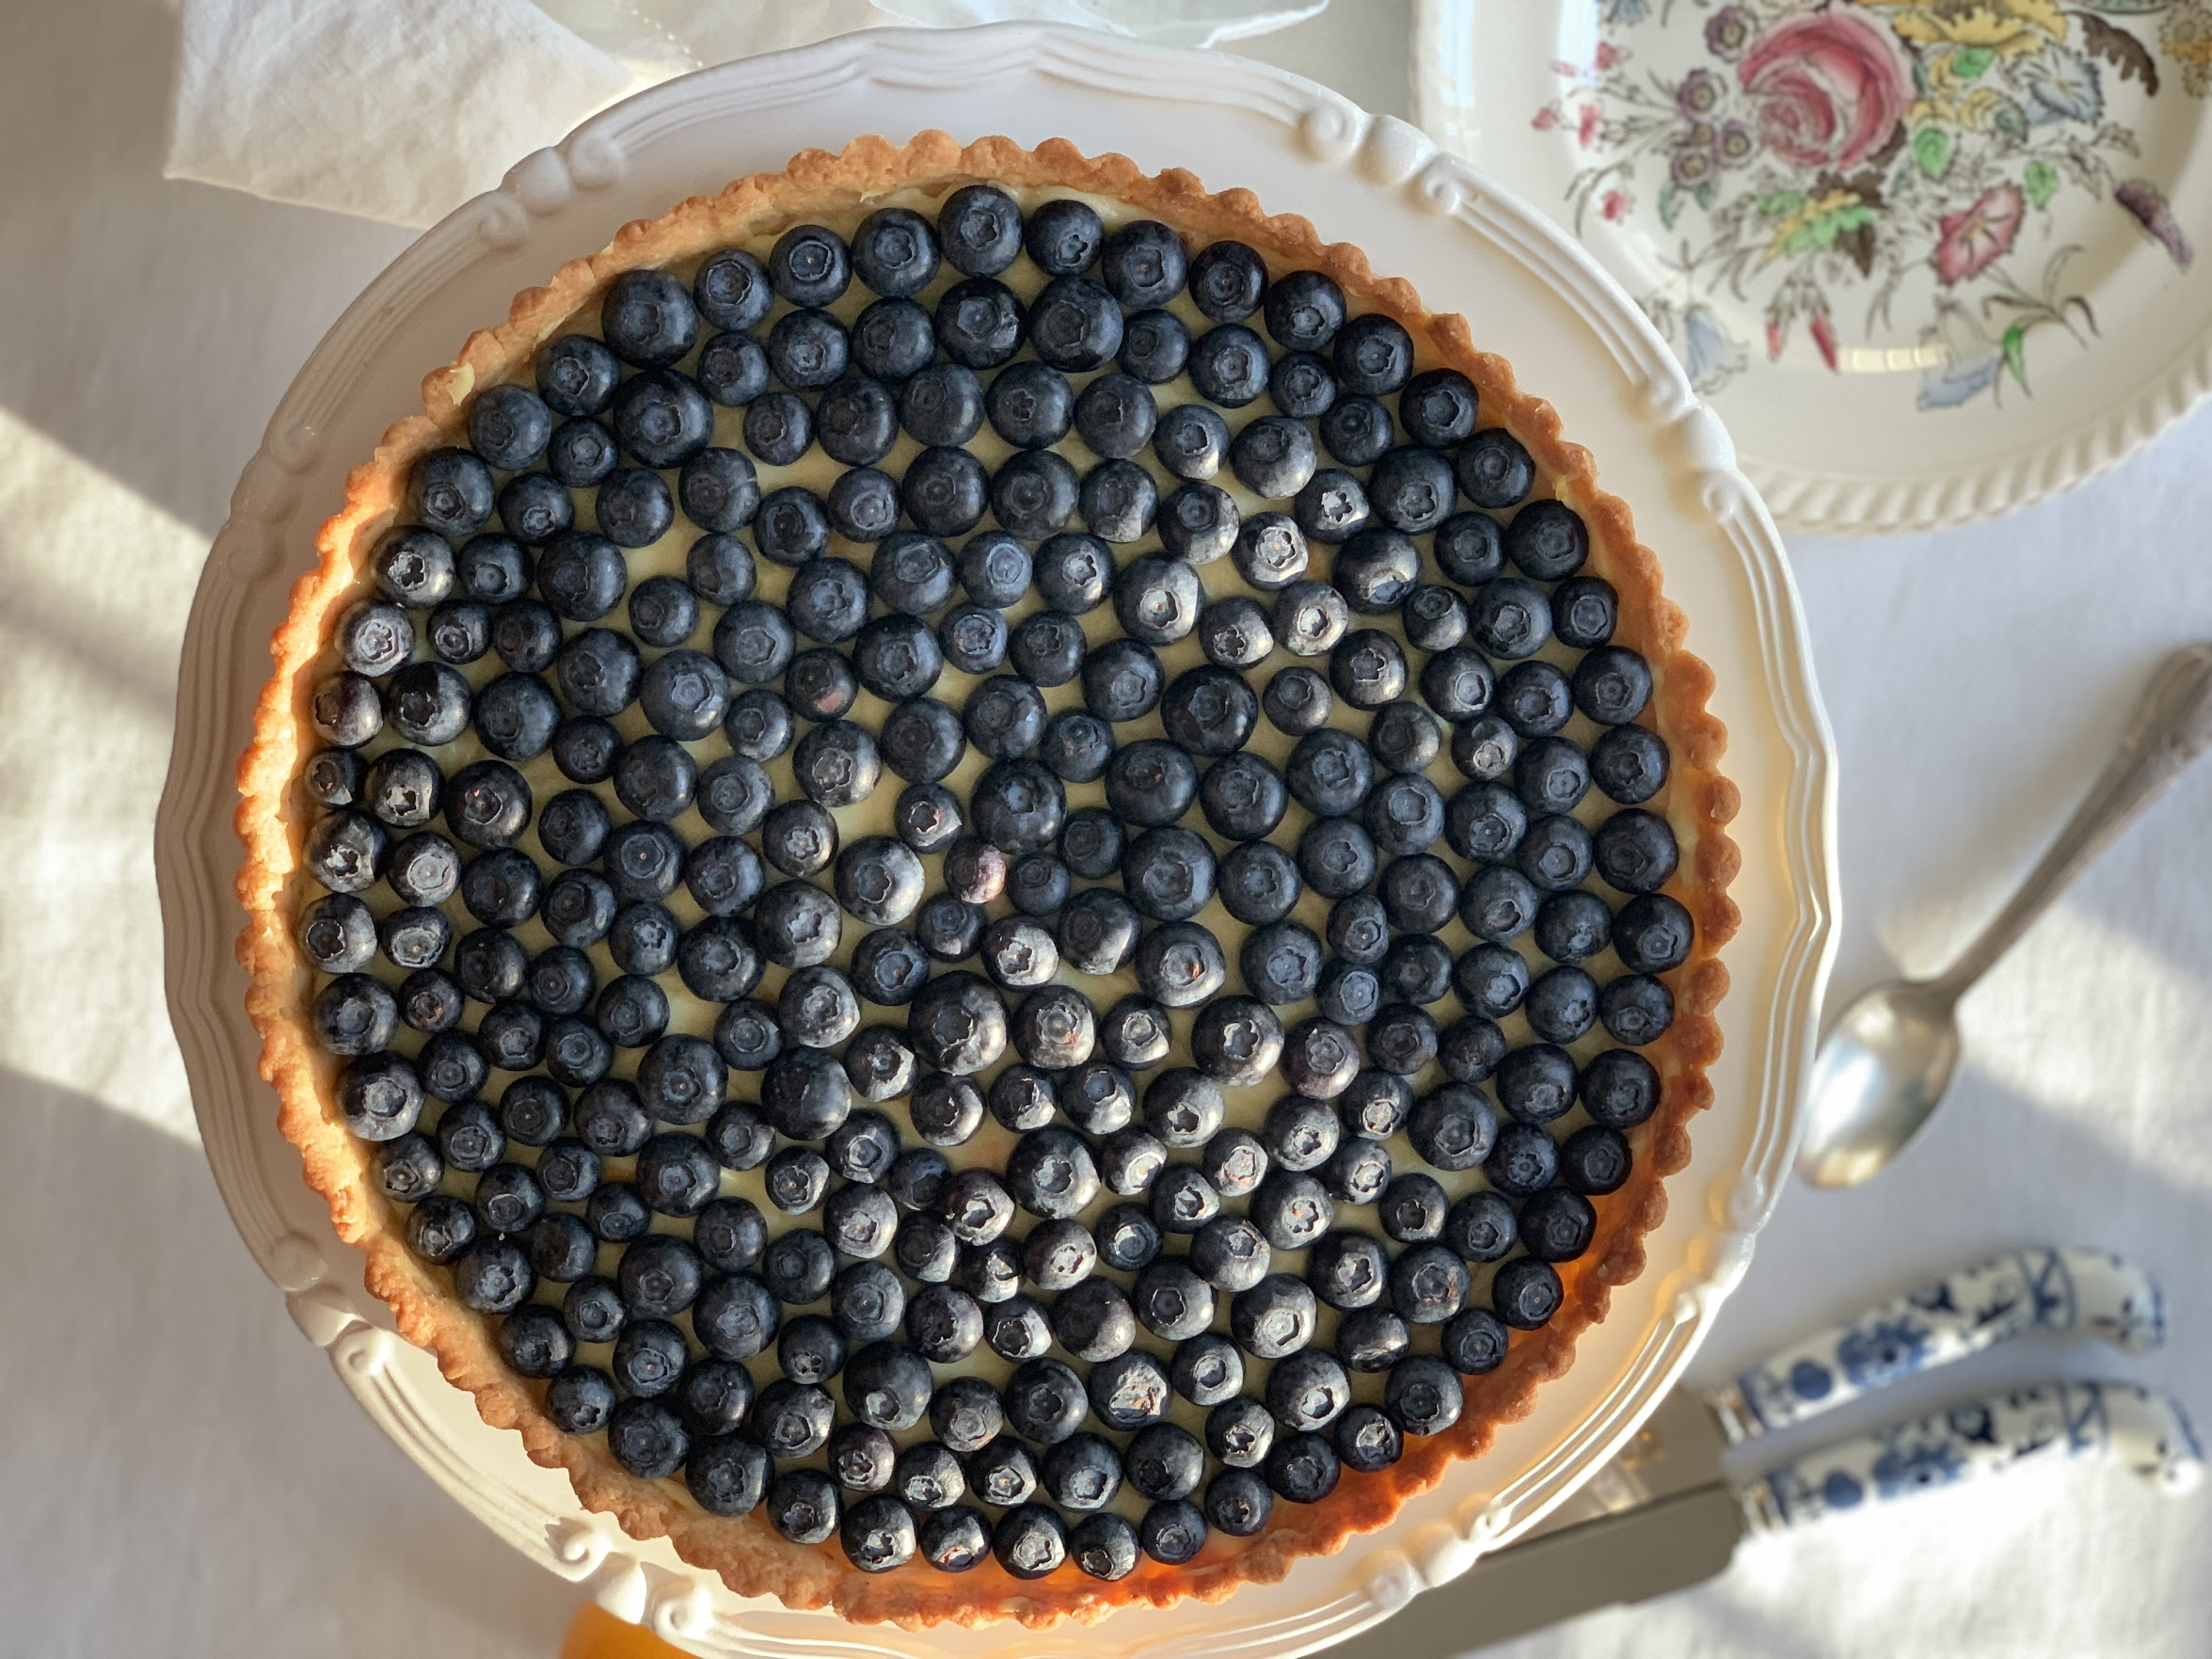 We used our easy pastry dough for this recipe of a blueberry tart with lemon cream